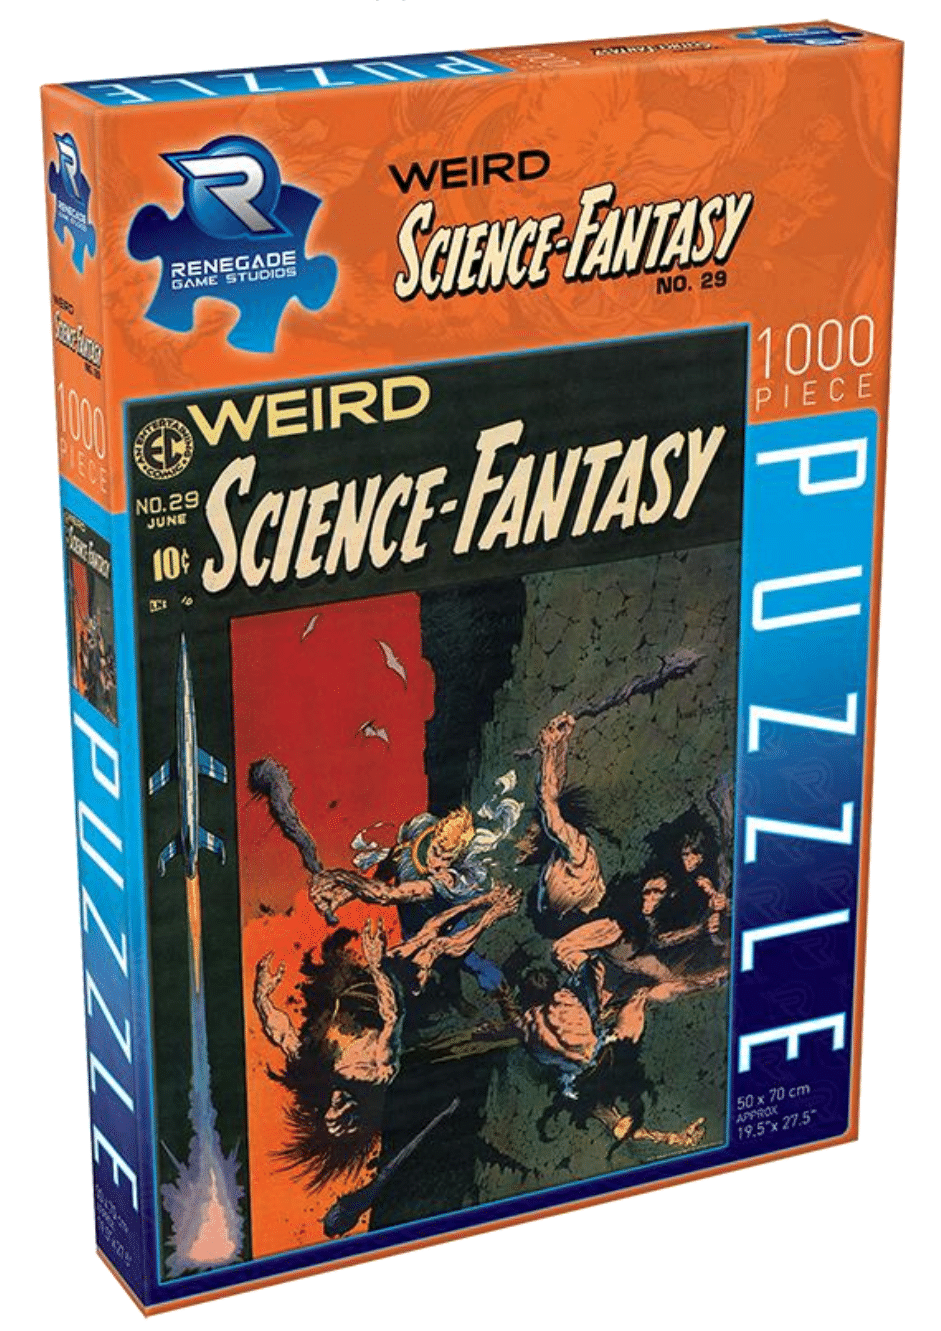 EC Comics Weird Science-Fantasy No. 29 (1000 Piece Puzzle)